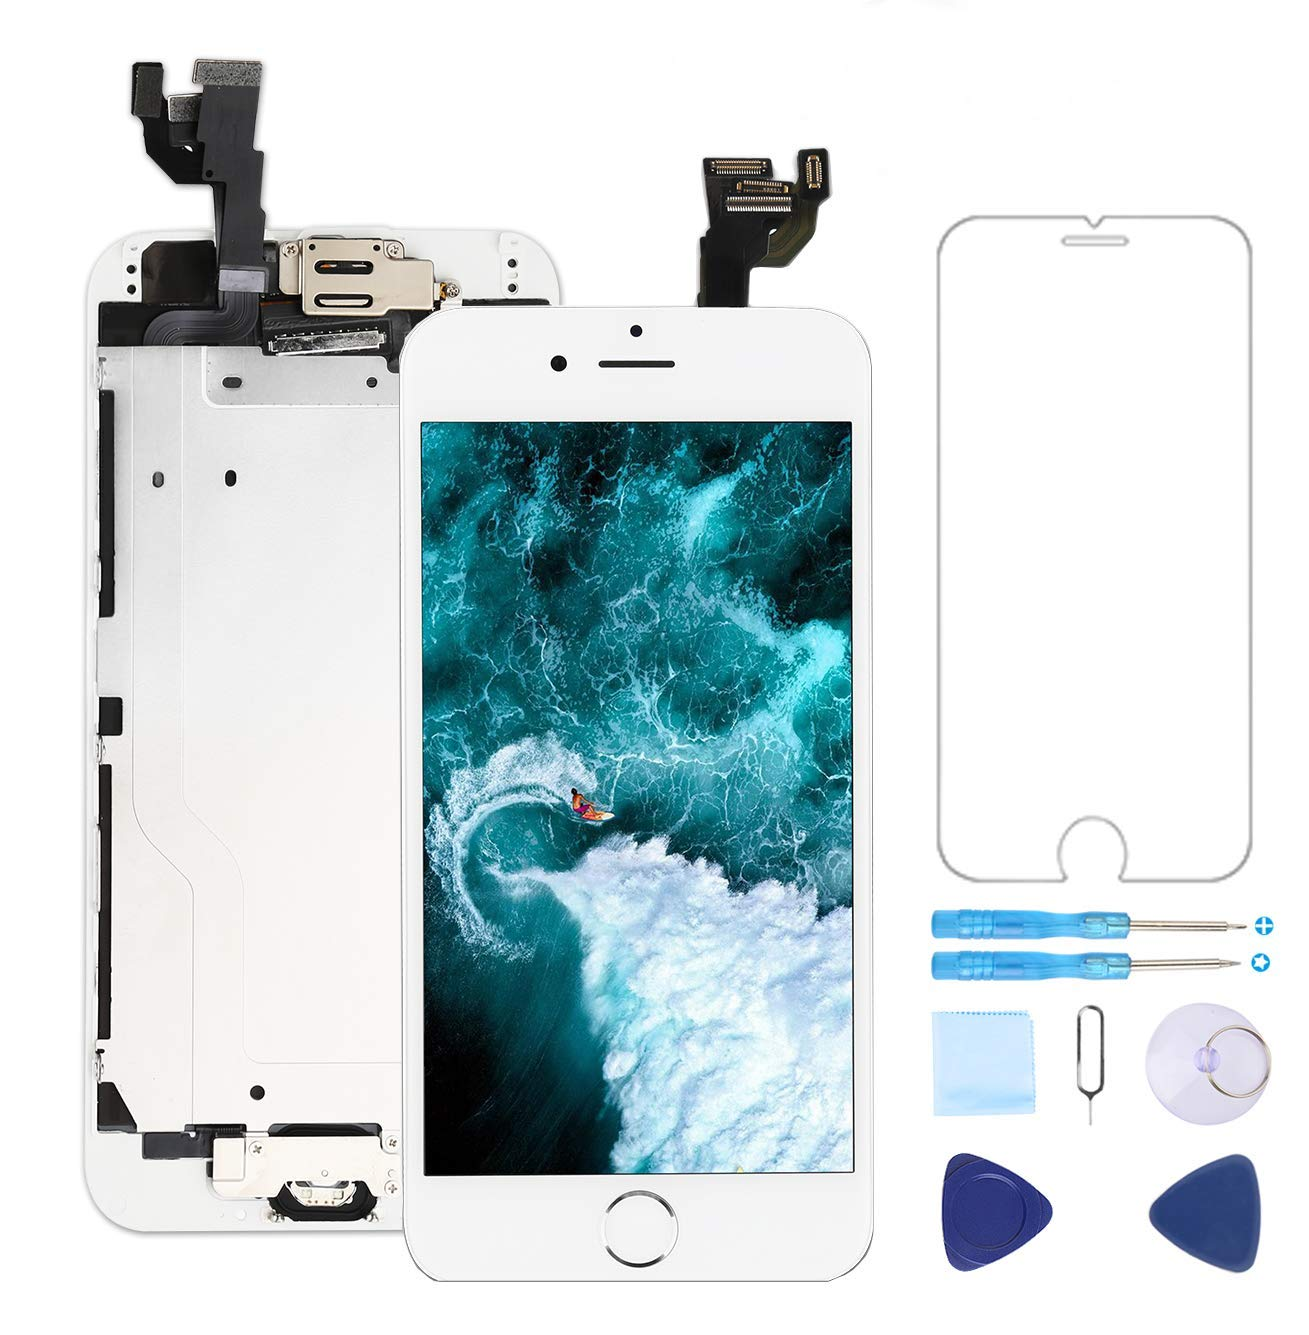 Screen Replacement for iPhone 6 White 4.7'' Inch LCD Display Touch Digitizer Frame Assembly Full Repair Kit,with Home Button,Proximity Sensor,Ear Speaker,Front Camera,Screen Protector,Repair Tools by Topscreen